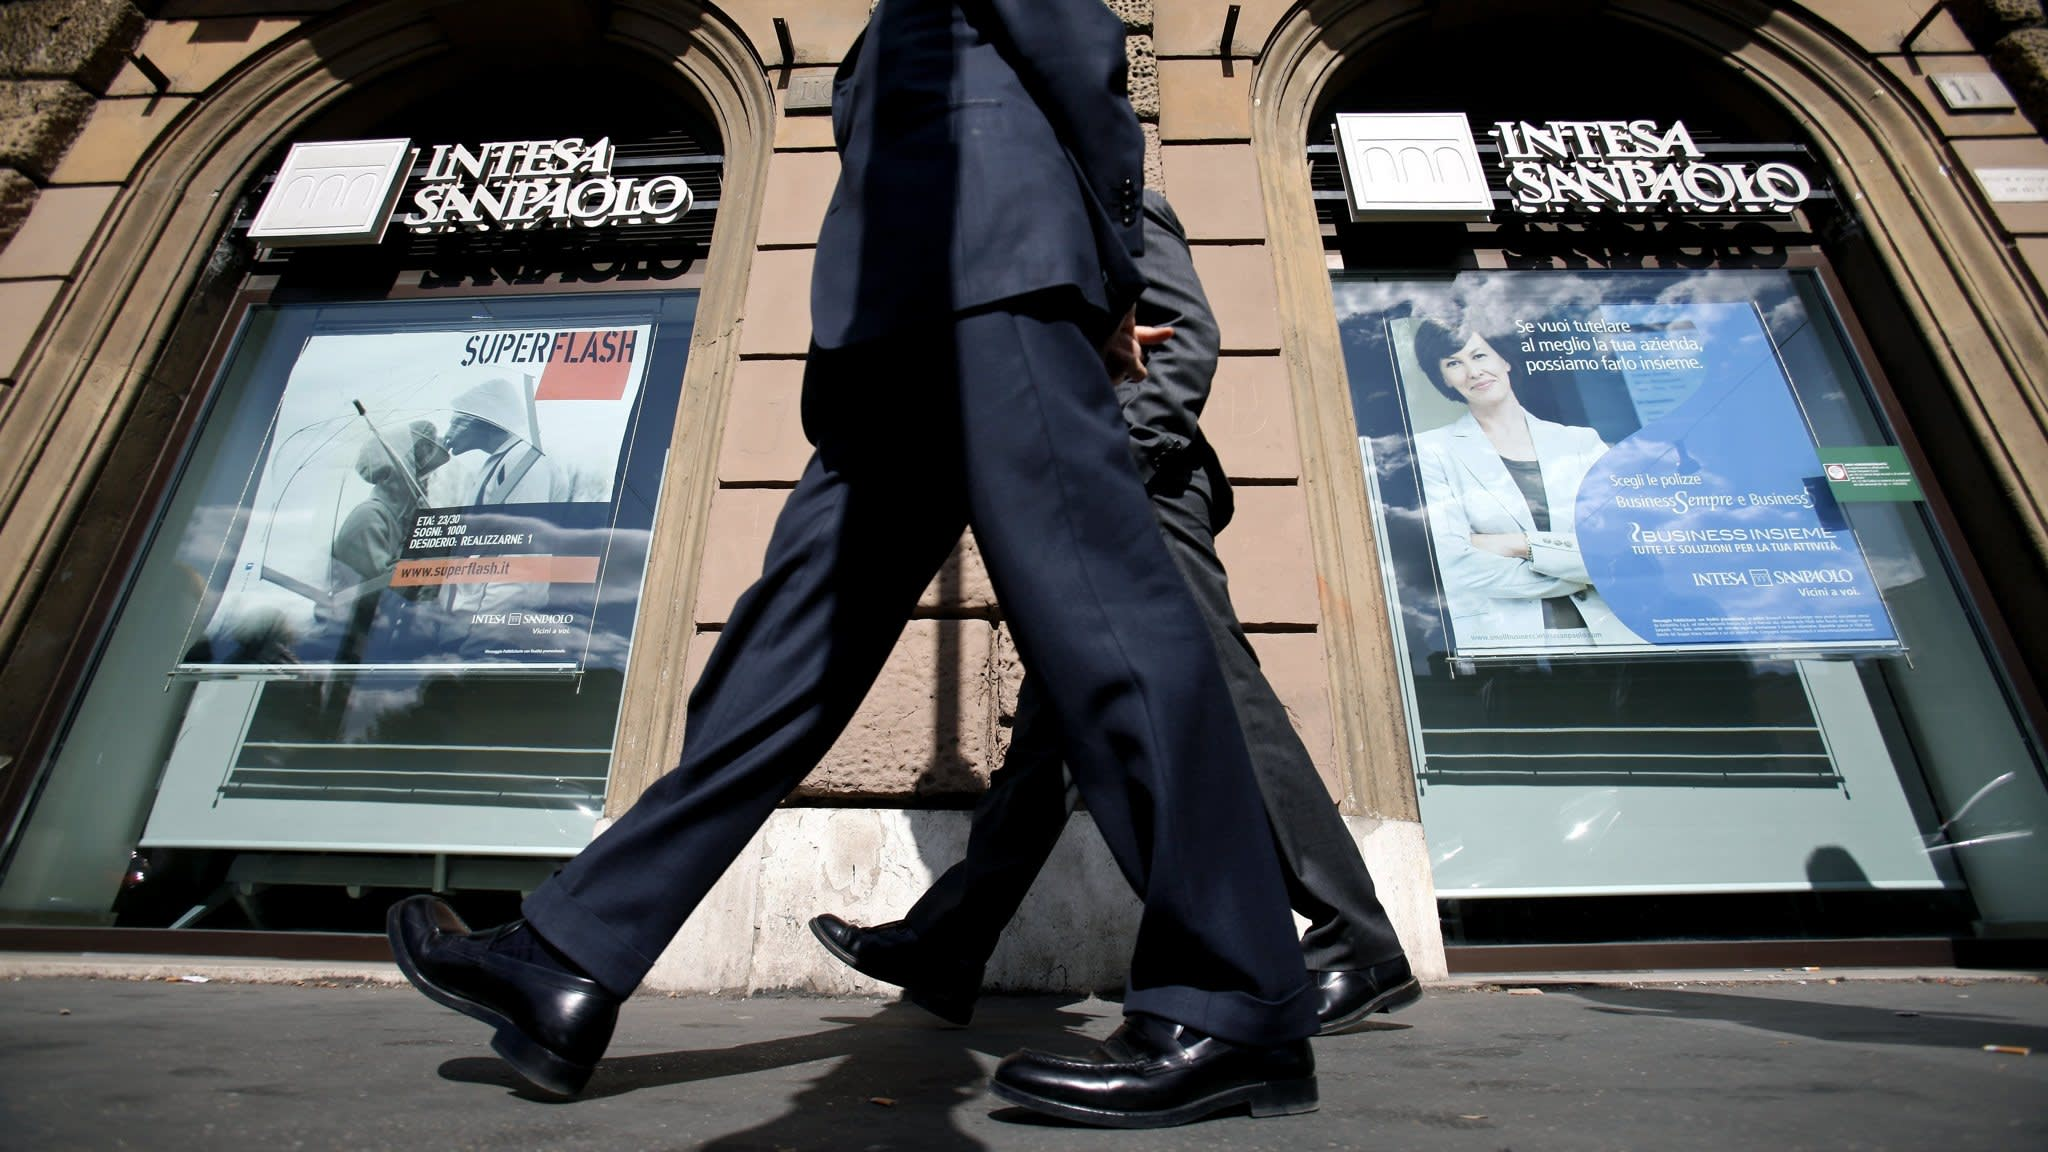 Italian sell-off hits debt sales of companies and banks